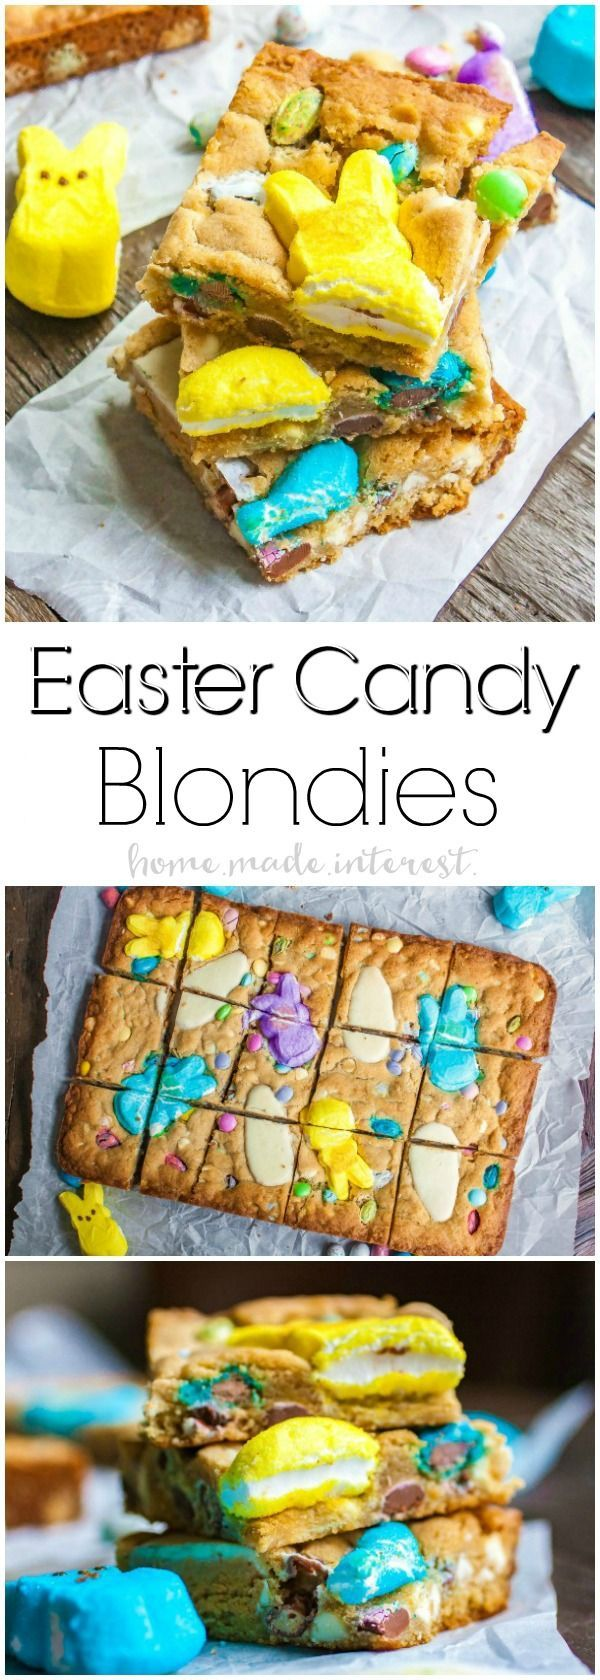 Easter Candy Blondies | Looking for something to do with all of that leftover Easter candy? This easy blondie recipe uses Peeps along with all of your other favorite Easter candy to make Easter Candy Blondies. If you're looking for a fun Peeps recipe you're going to love this! This Easter dessert recipe is so good and so simple to make! #easter #easterdessert #dessertrecipes #dessert